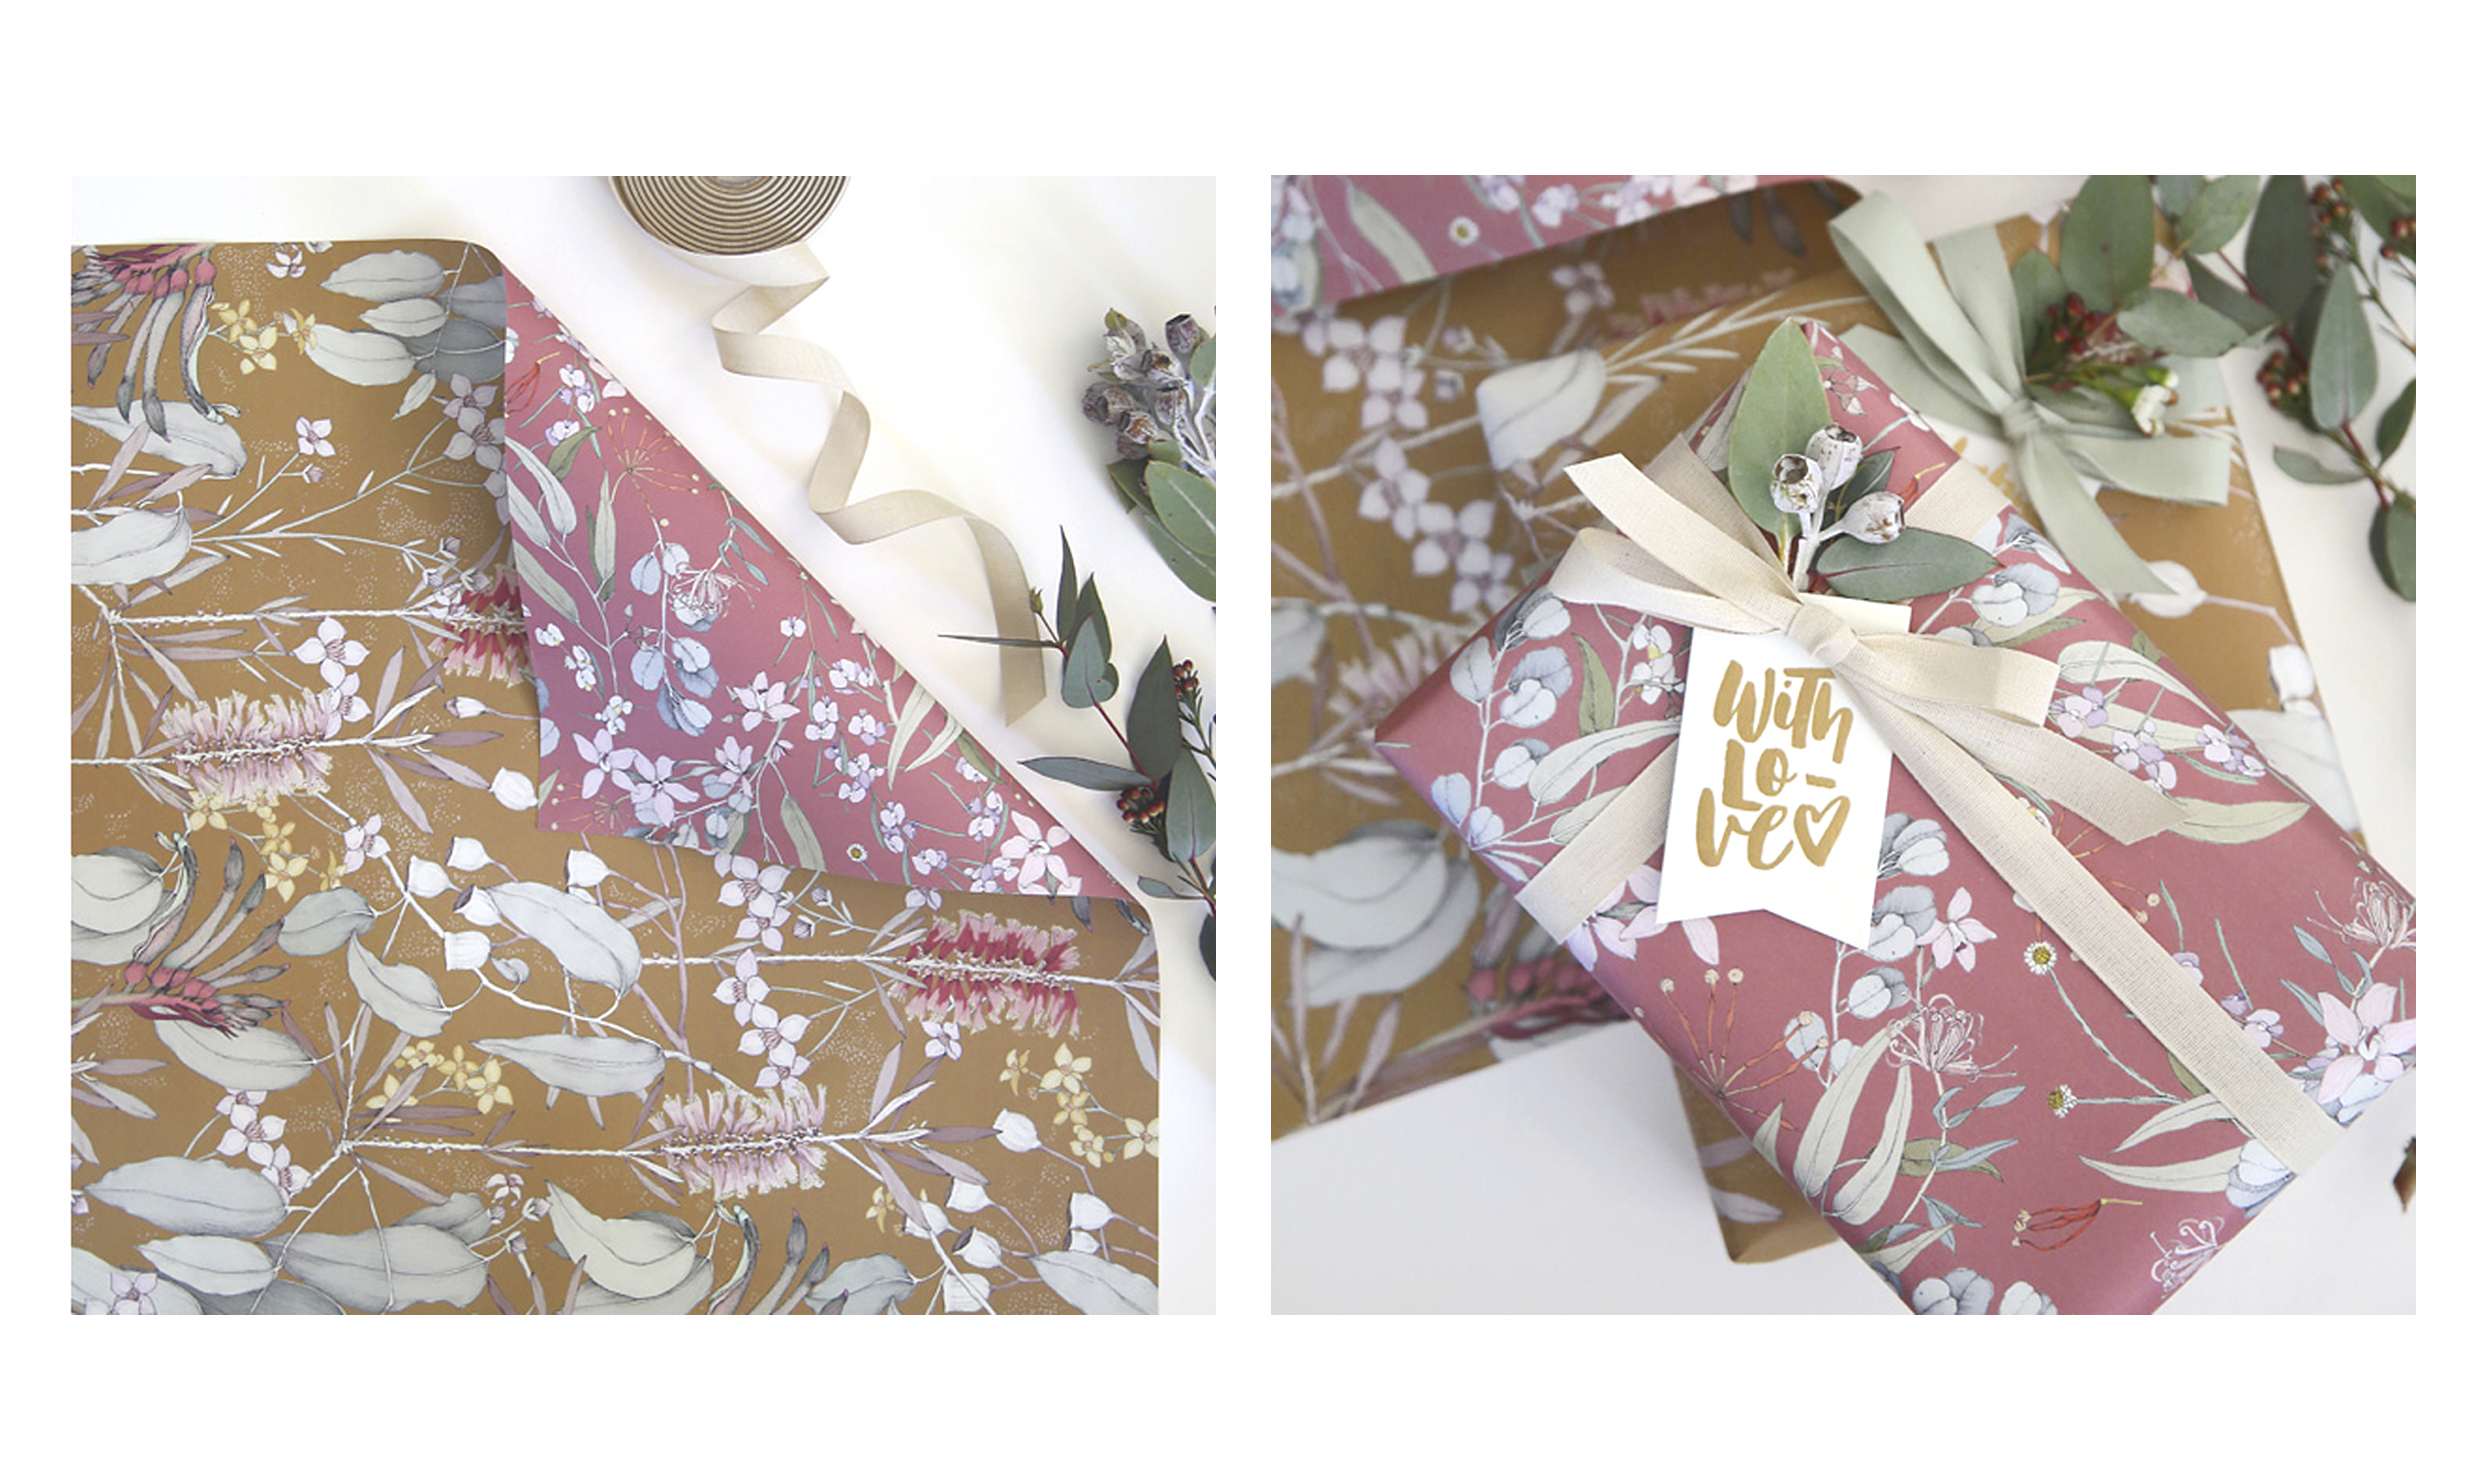 Illustration and Pattern design for  Bespoke Letterpress .  Printed across Wrapping paper, gift cards & tags, and notebooks.